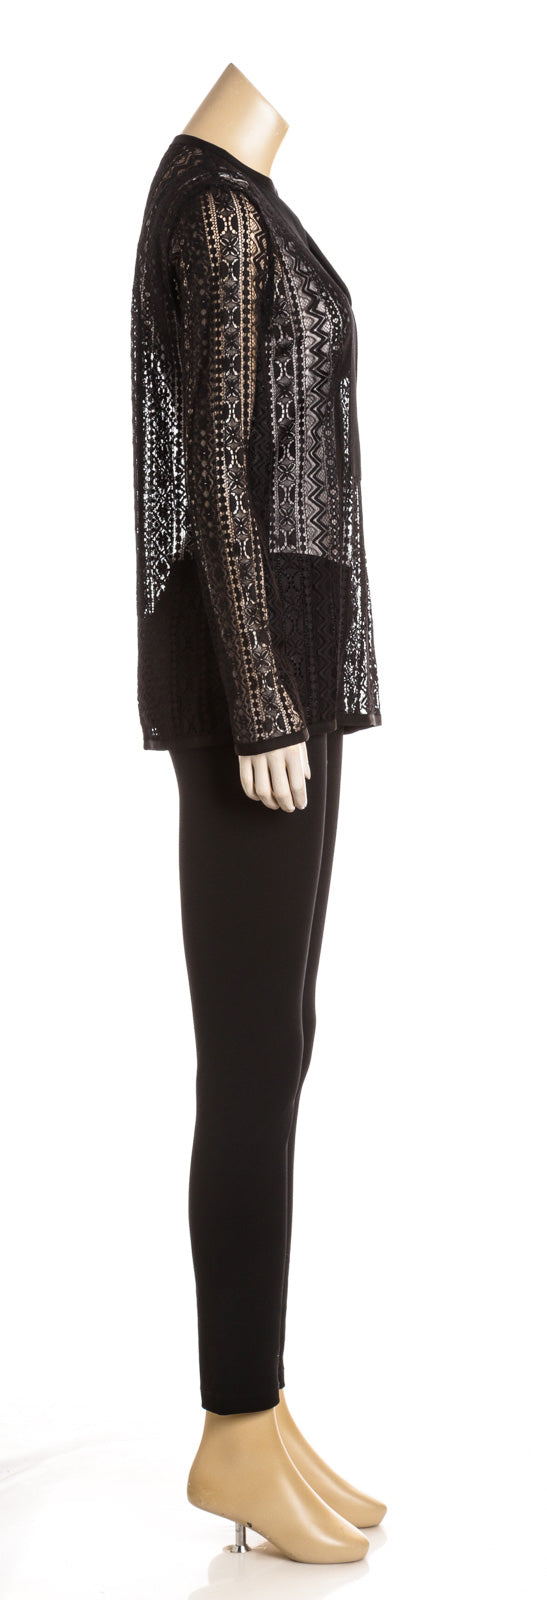 Lanvin Black Long Sleeve Lace Tunic Top (Size 36)